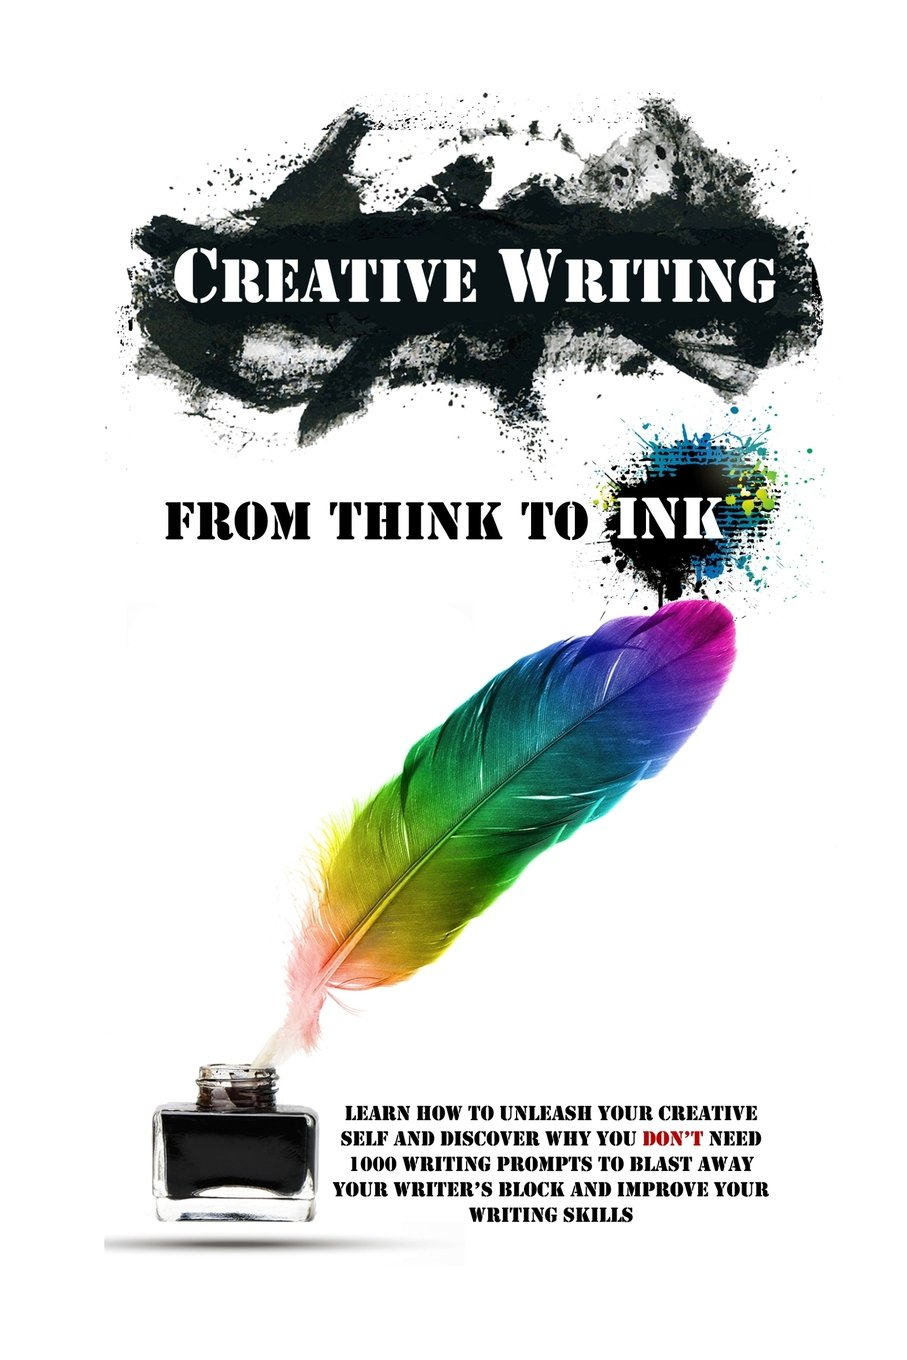 Creative writing from think to ink learn how to unleash your creative writing from think to ink learn how to unleash your creative self and discover why you dont need 1000 writing prompts to blast away your fandeluxe Image collections